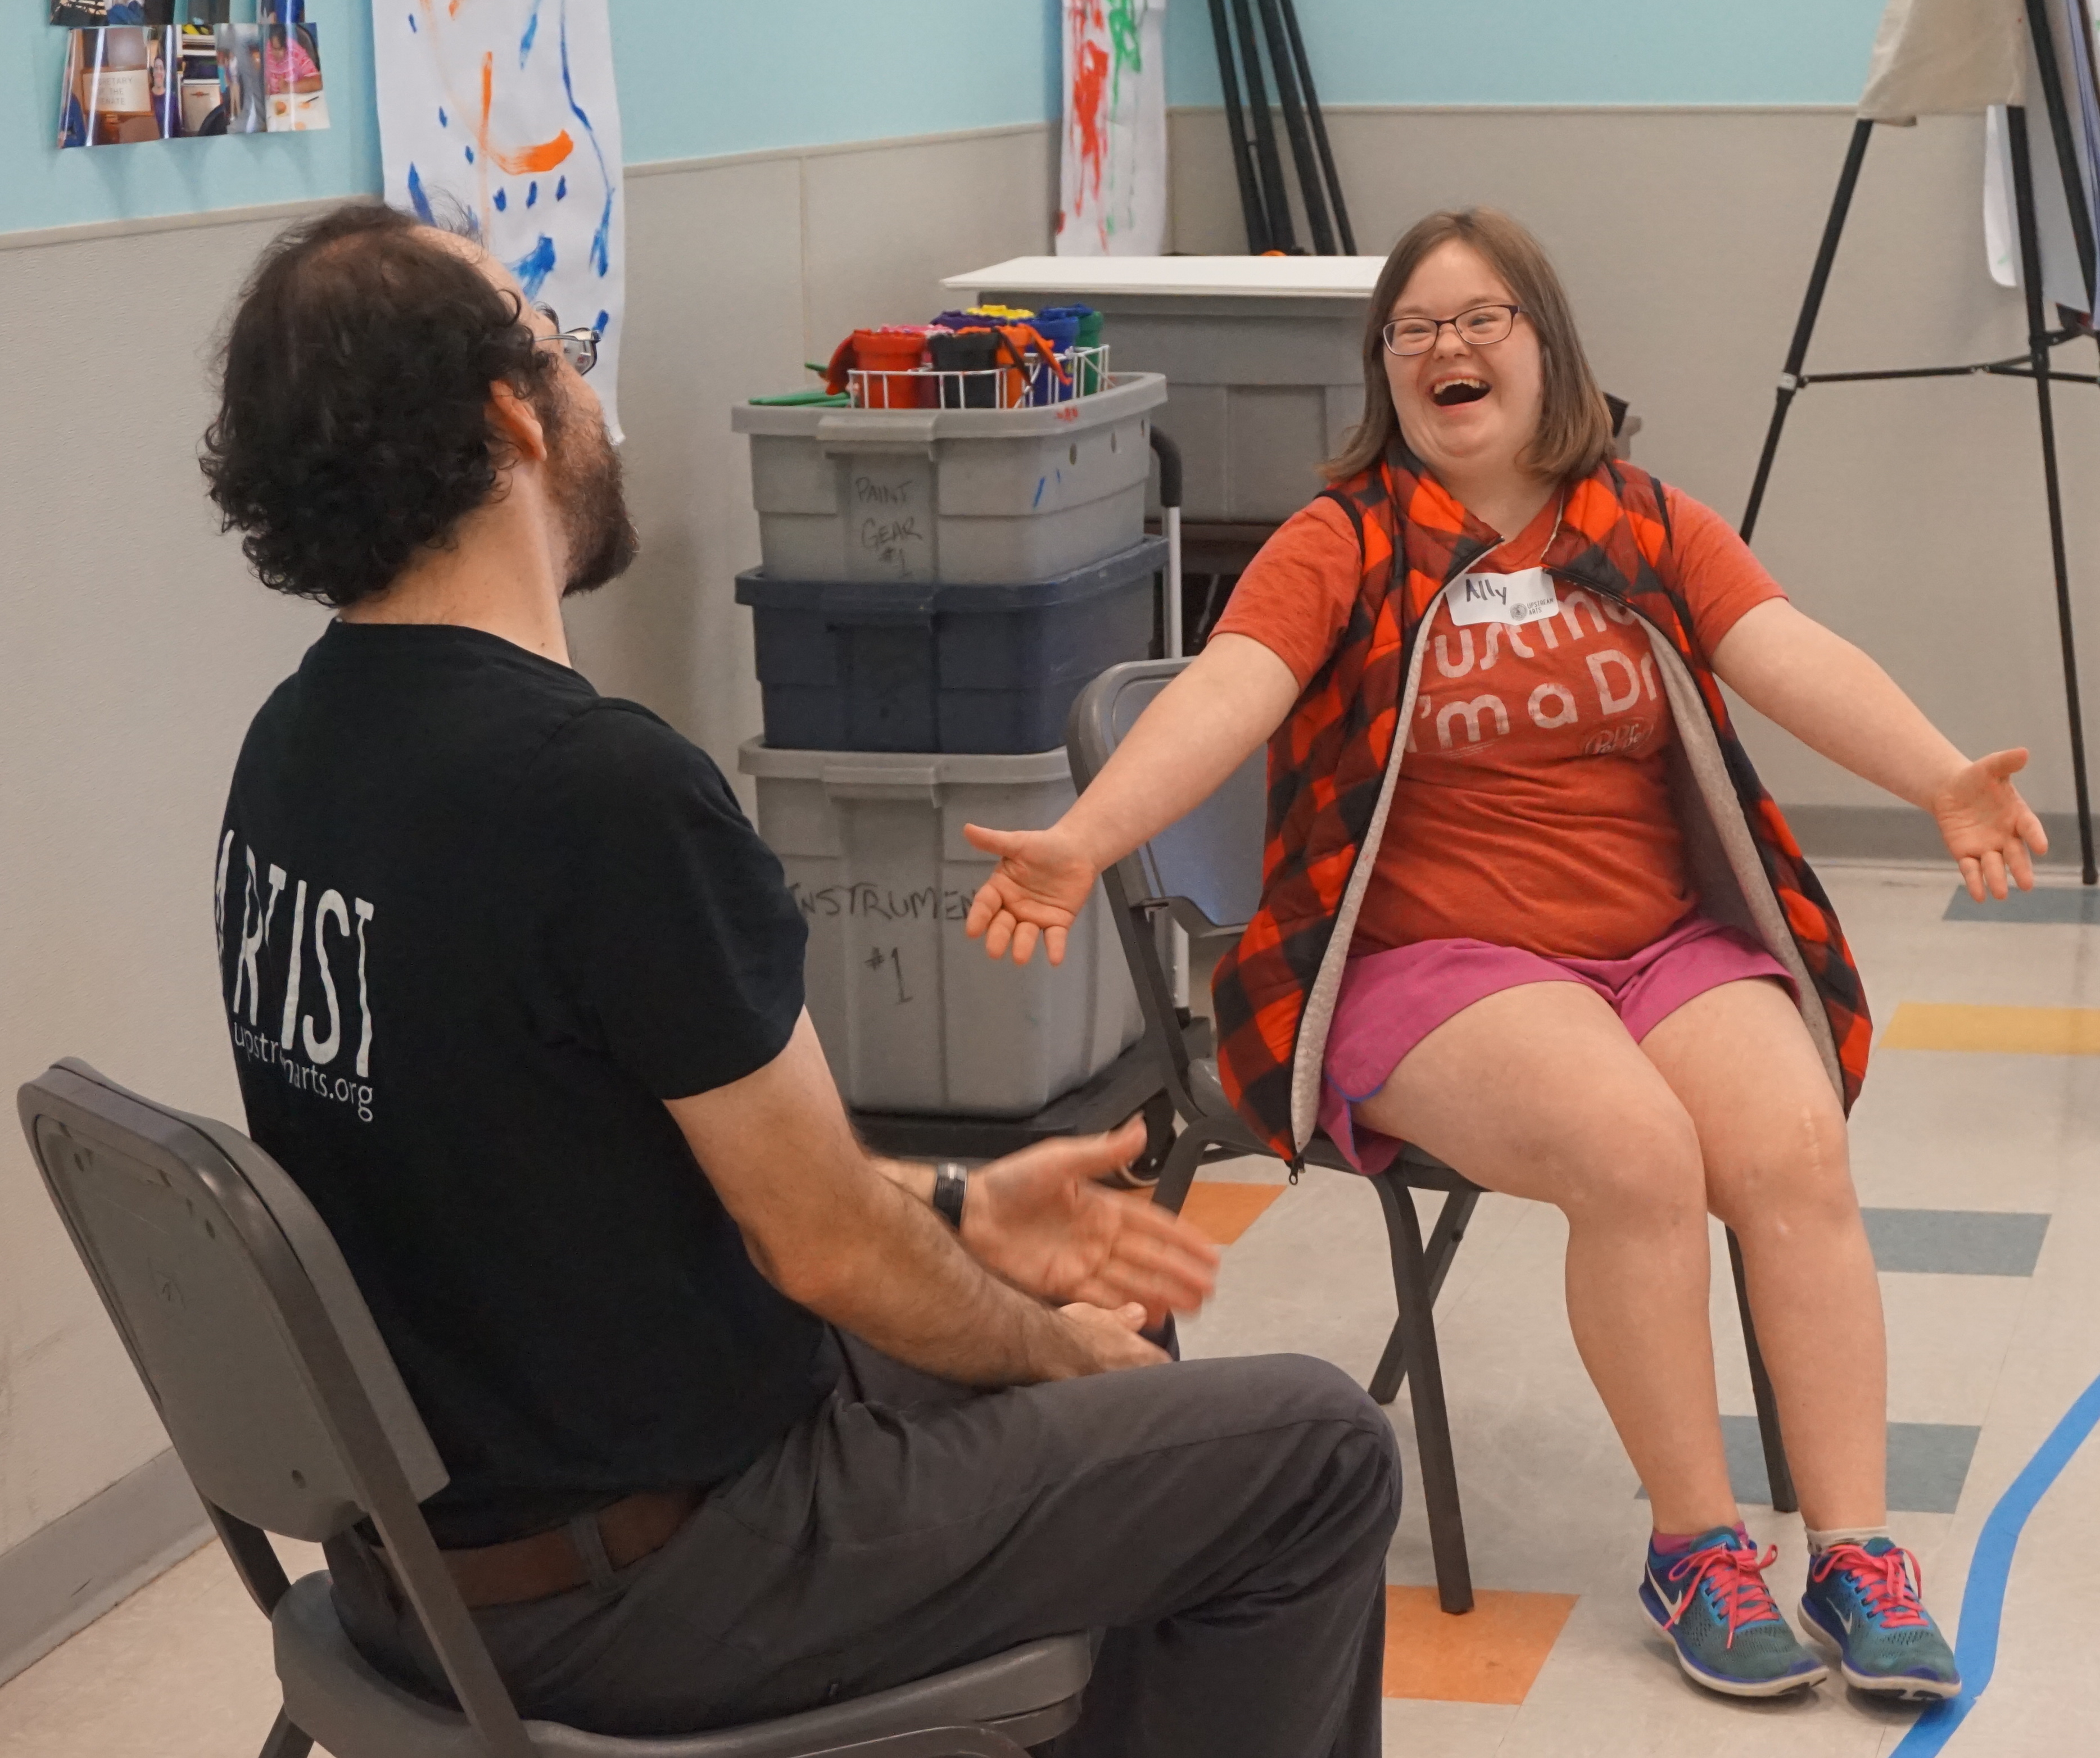 An Upstream Arts Teaching Artist and Participant sitting in chairs, practicing an acting scenario